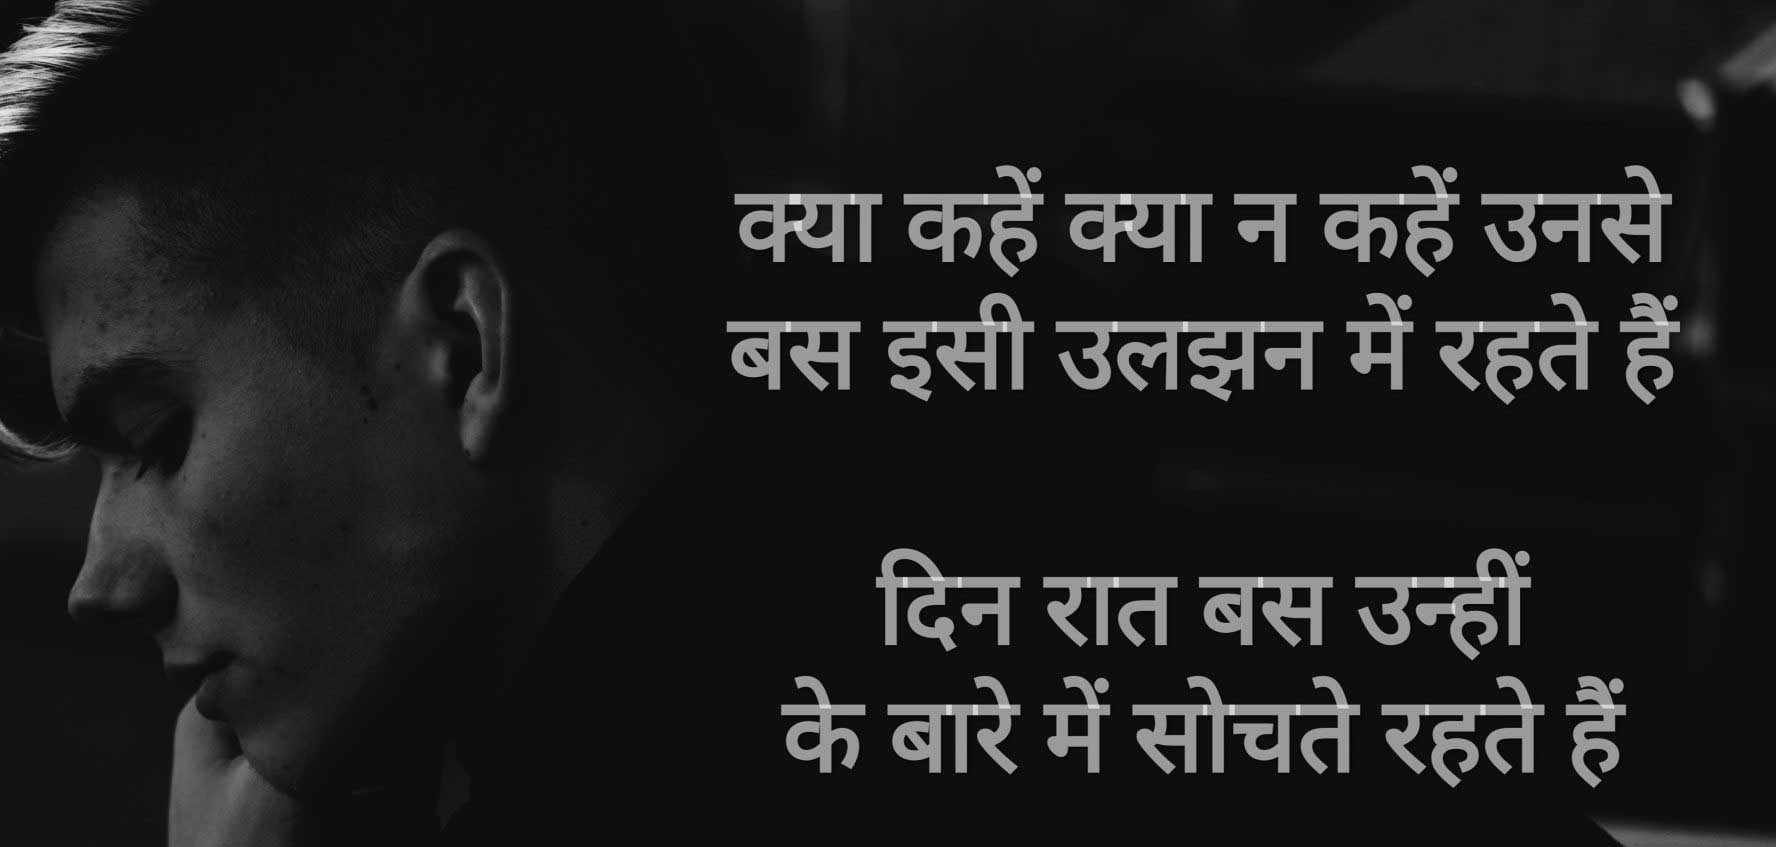 New Best Judai Shayari In Hindi